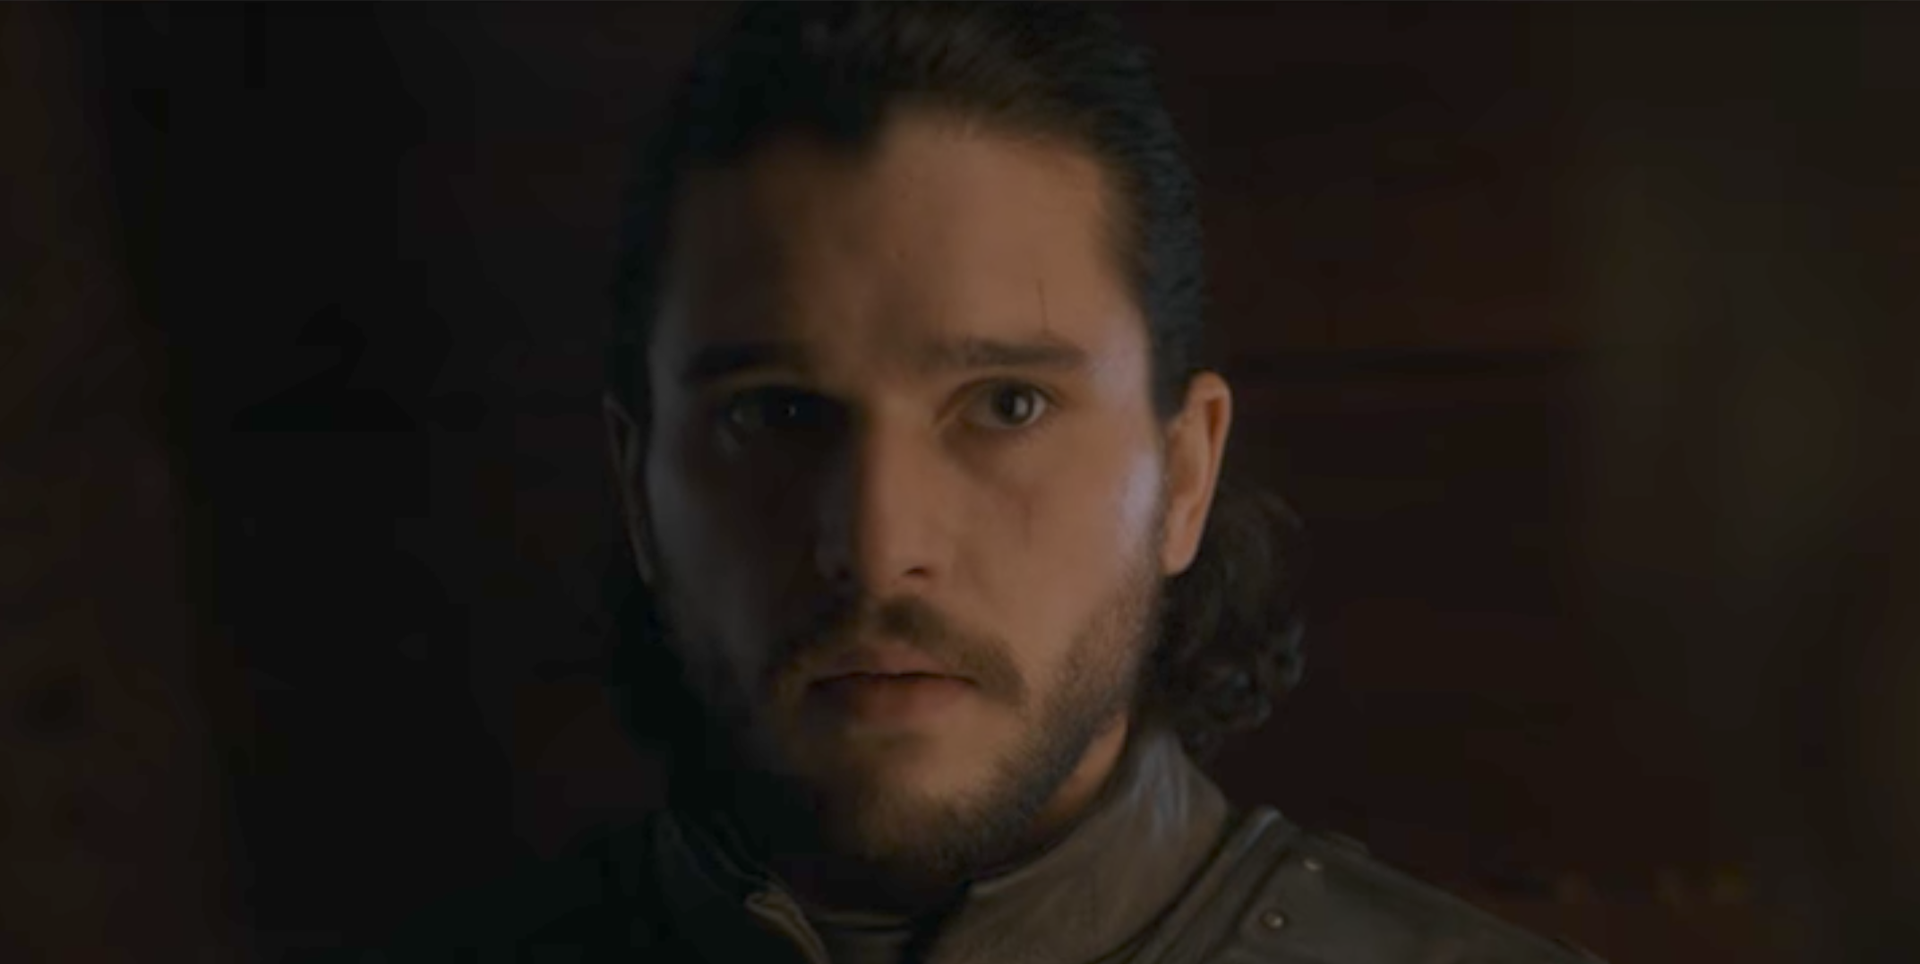 Kit Harington and Emilia Clarke Have Some FEELINGS About Their Game of Thrones Scene